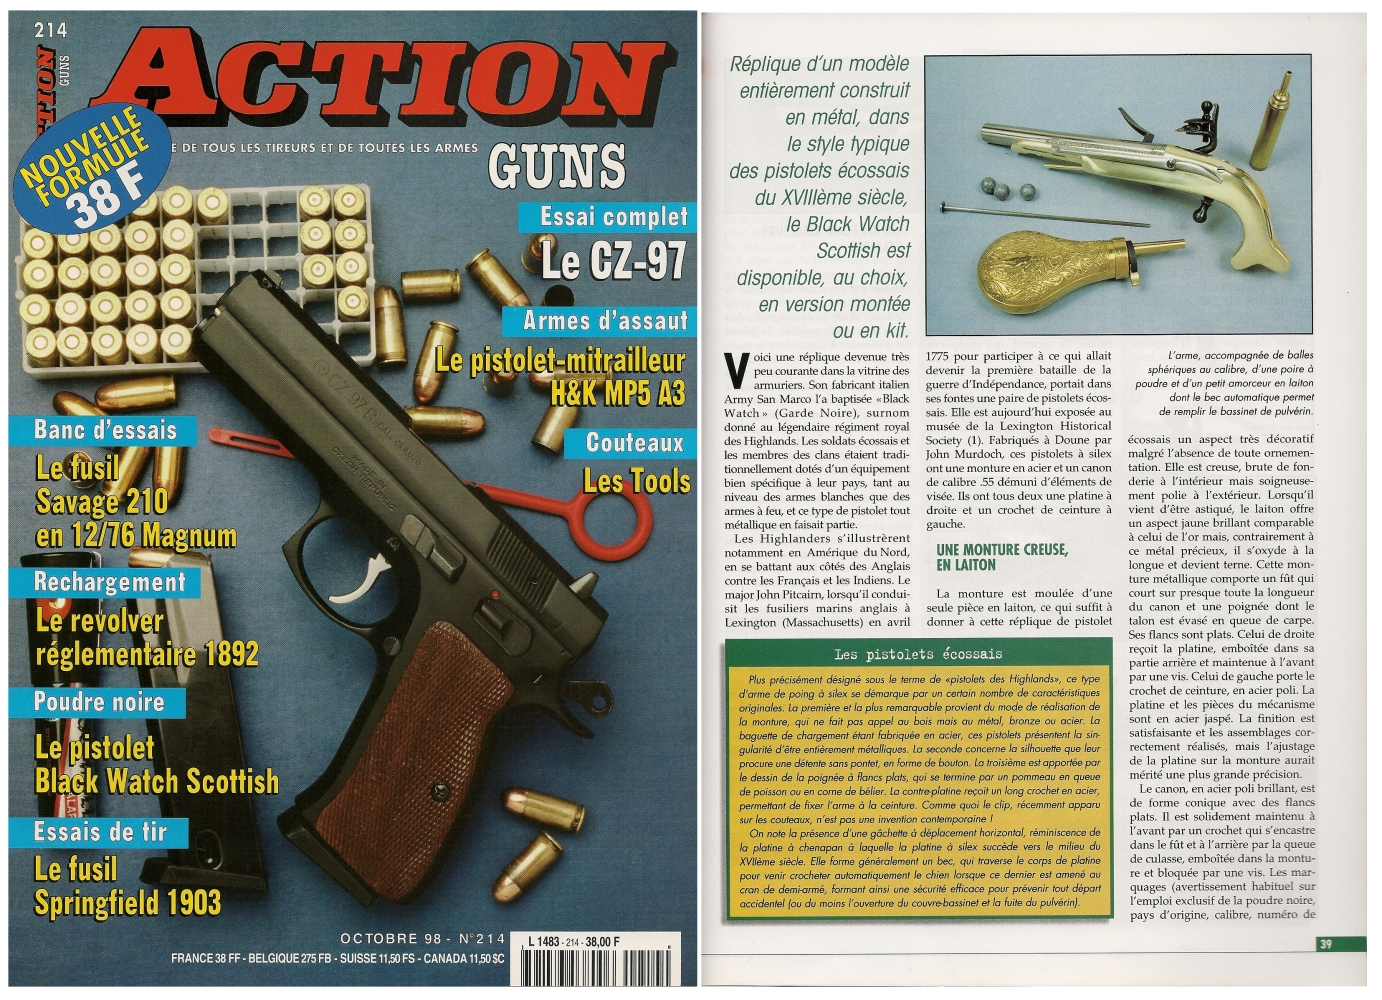 Le banc d'essai du pistolet à silex Black Watch Scottish a été publié sur 5 pages dans le magazine Action Guns n°214 (octobre 1998)